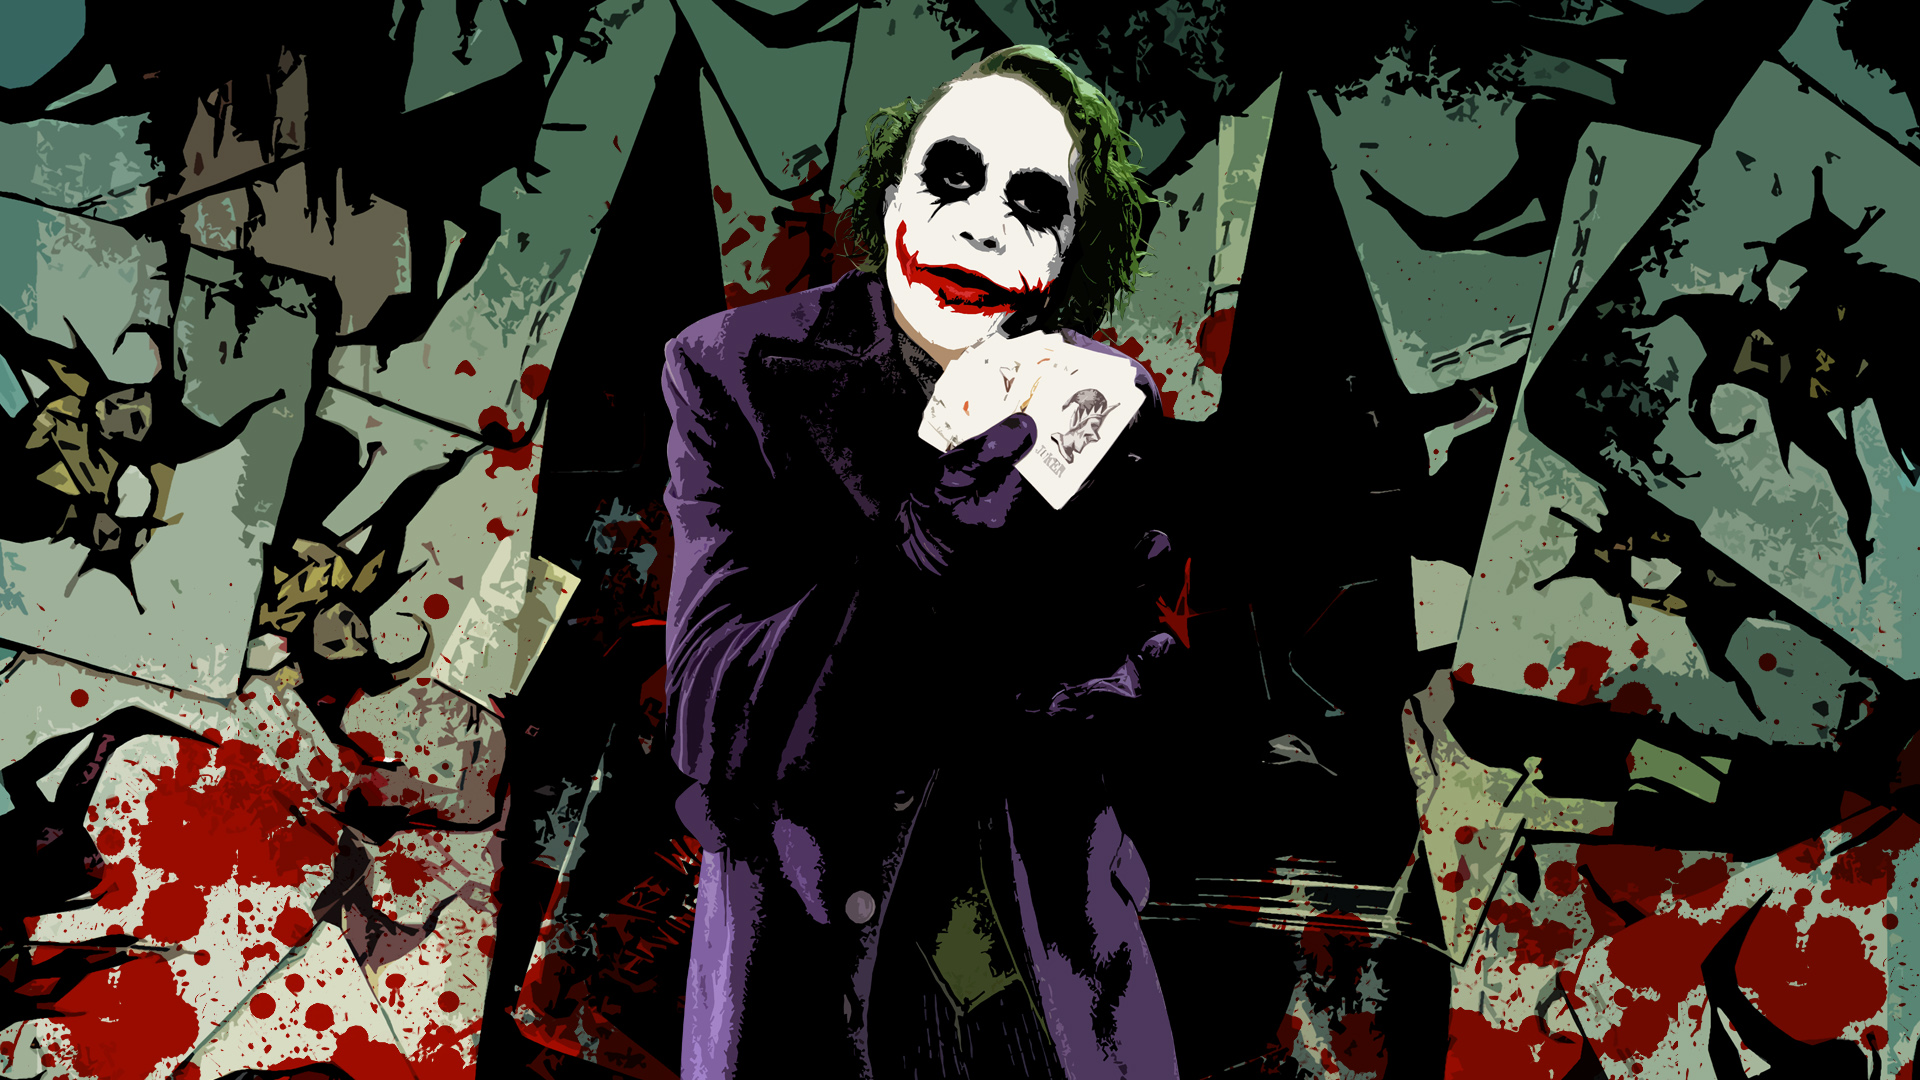 Comics - Batman  - Joker - The Joker Wallpaper